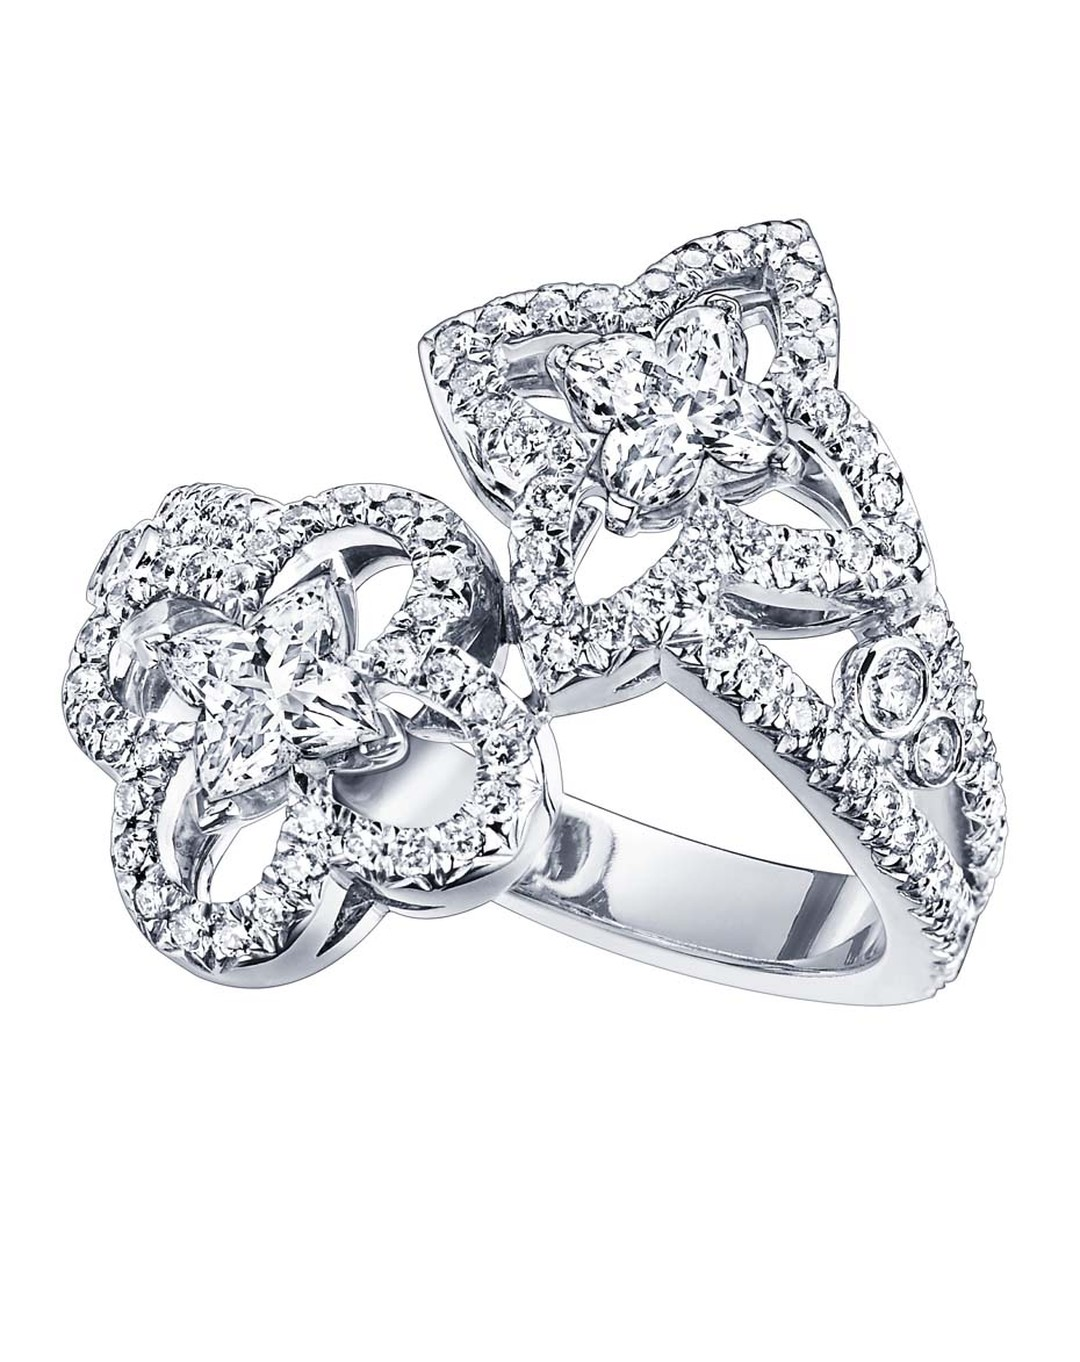 The most romantic of the Monogram Fusion Louis Vuitton rings is the Toi et Moi style, where a star and flower diamond come together, snugly wrapped around the finger.